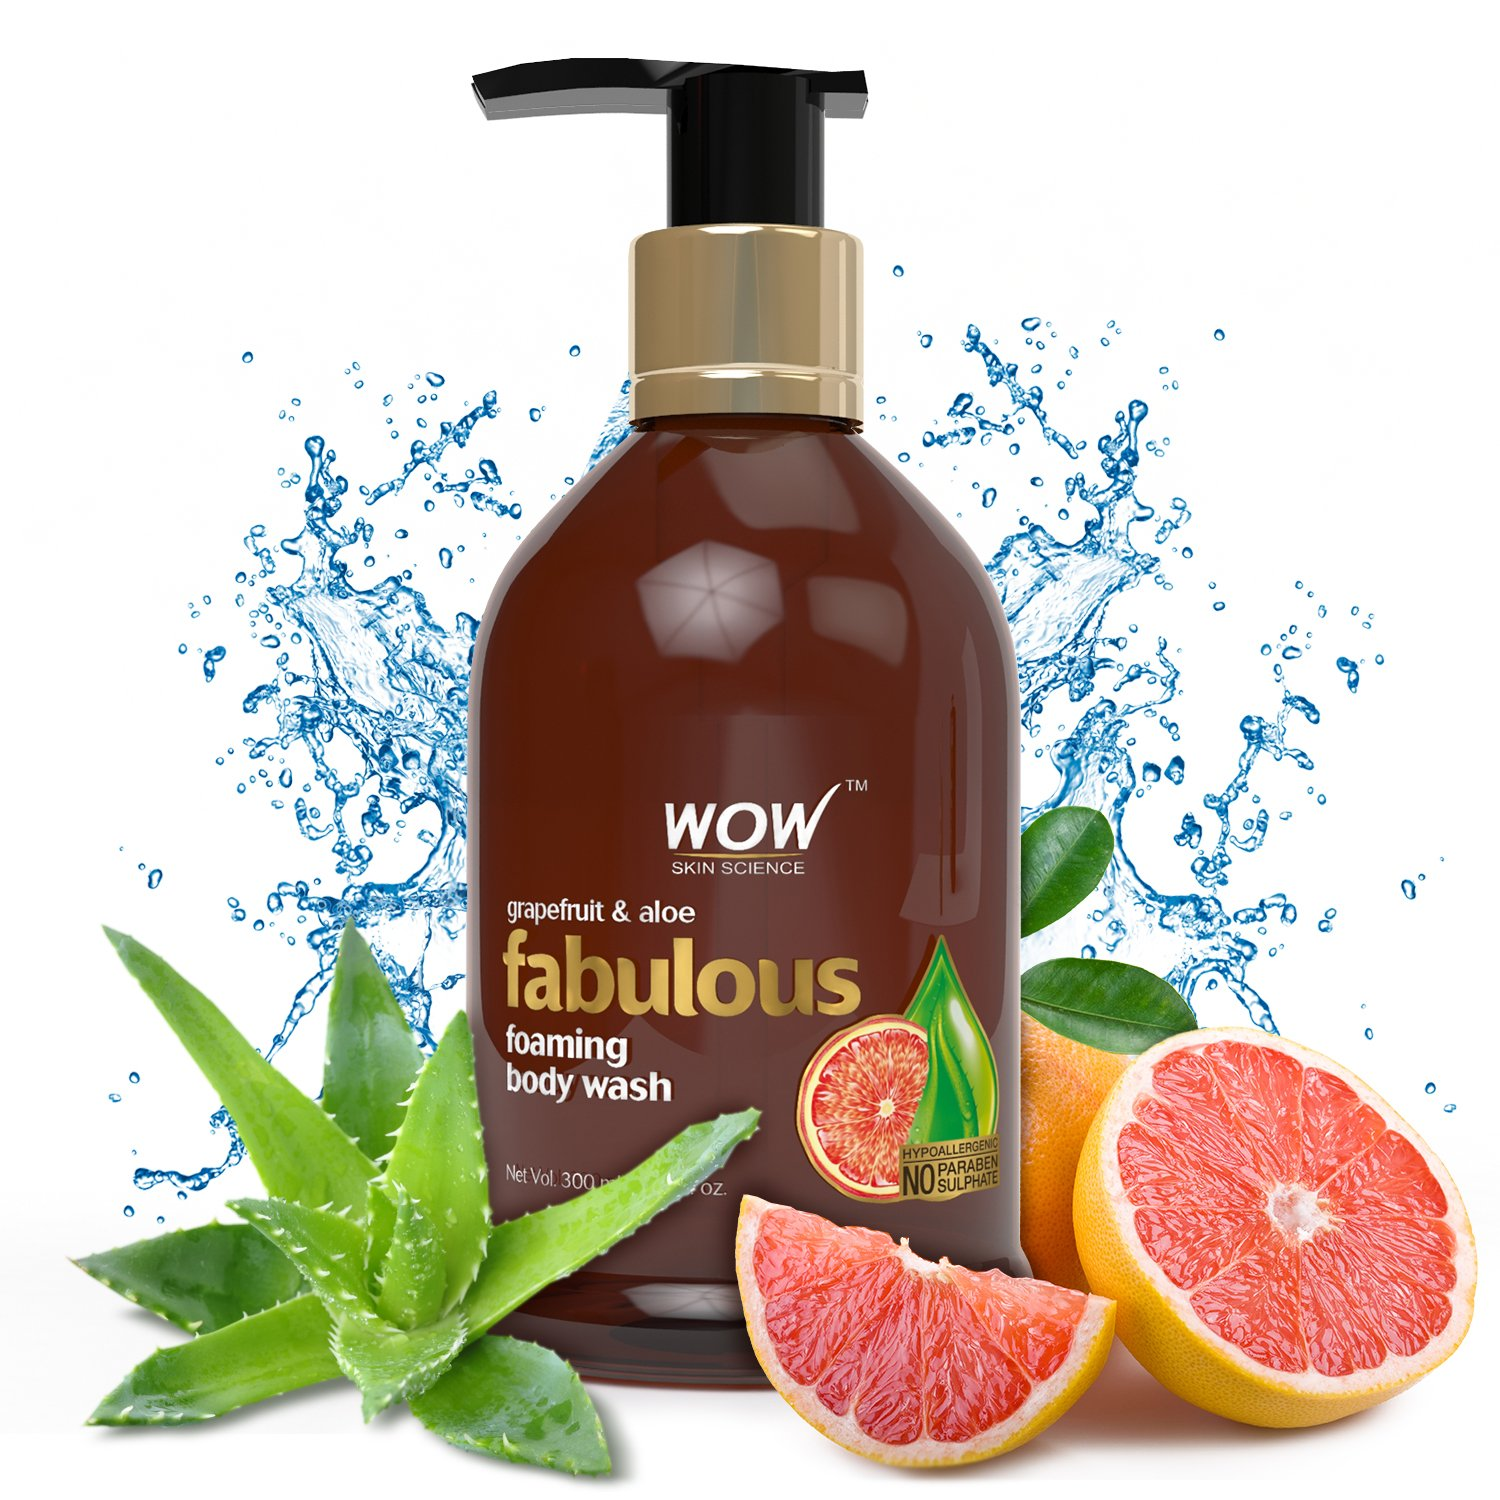 WOW Grapefruit & Aloe No Parabens & Sulphates Shower Gel, 300mL